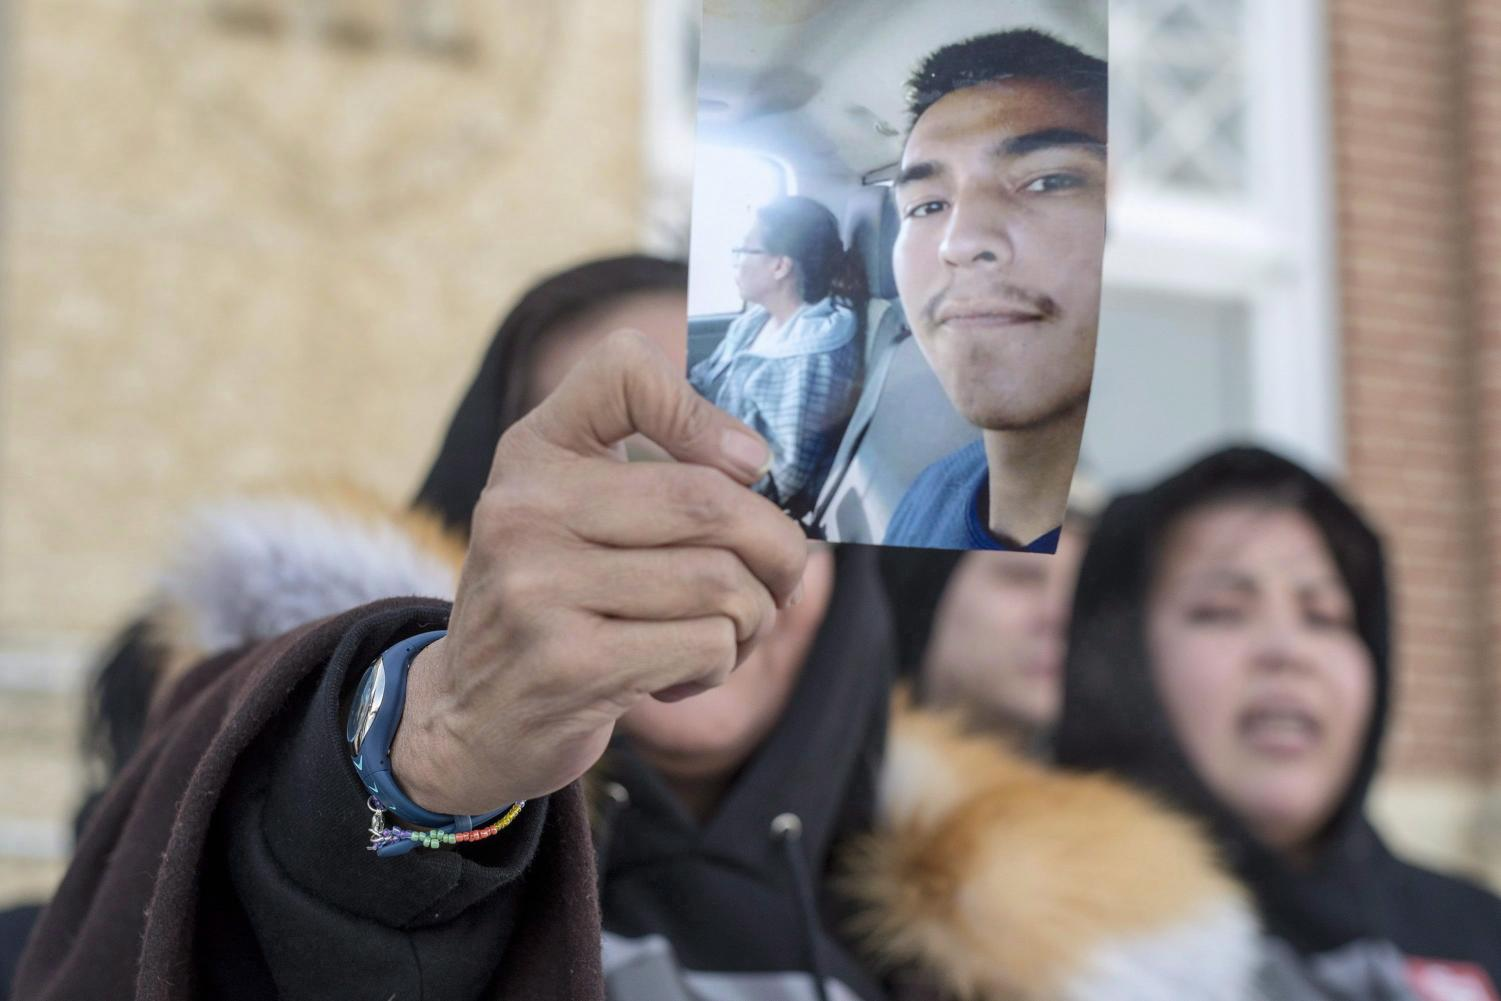 Debbie Baptiste holds up a picture of her son, Colten Boushies on the fifth day of the trial of Gerald Stanley, the farmer accused of killing the 22-year-old Indigenous man, in Battleford, Saskatchewan on Feb. 5, 2018. (Liam Richards | The Canadian Press via AP)